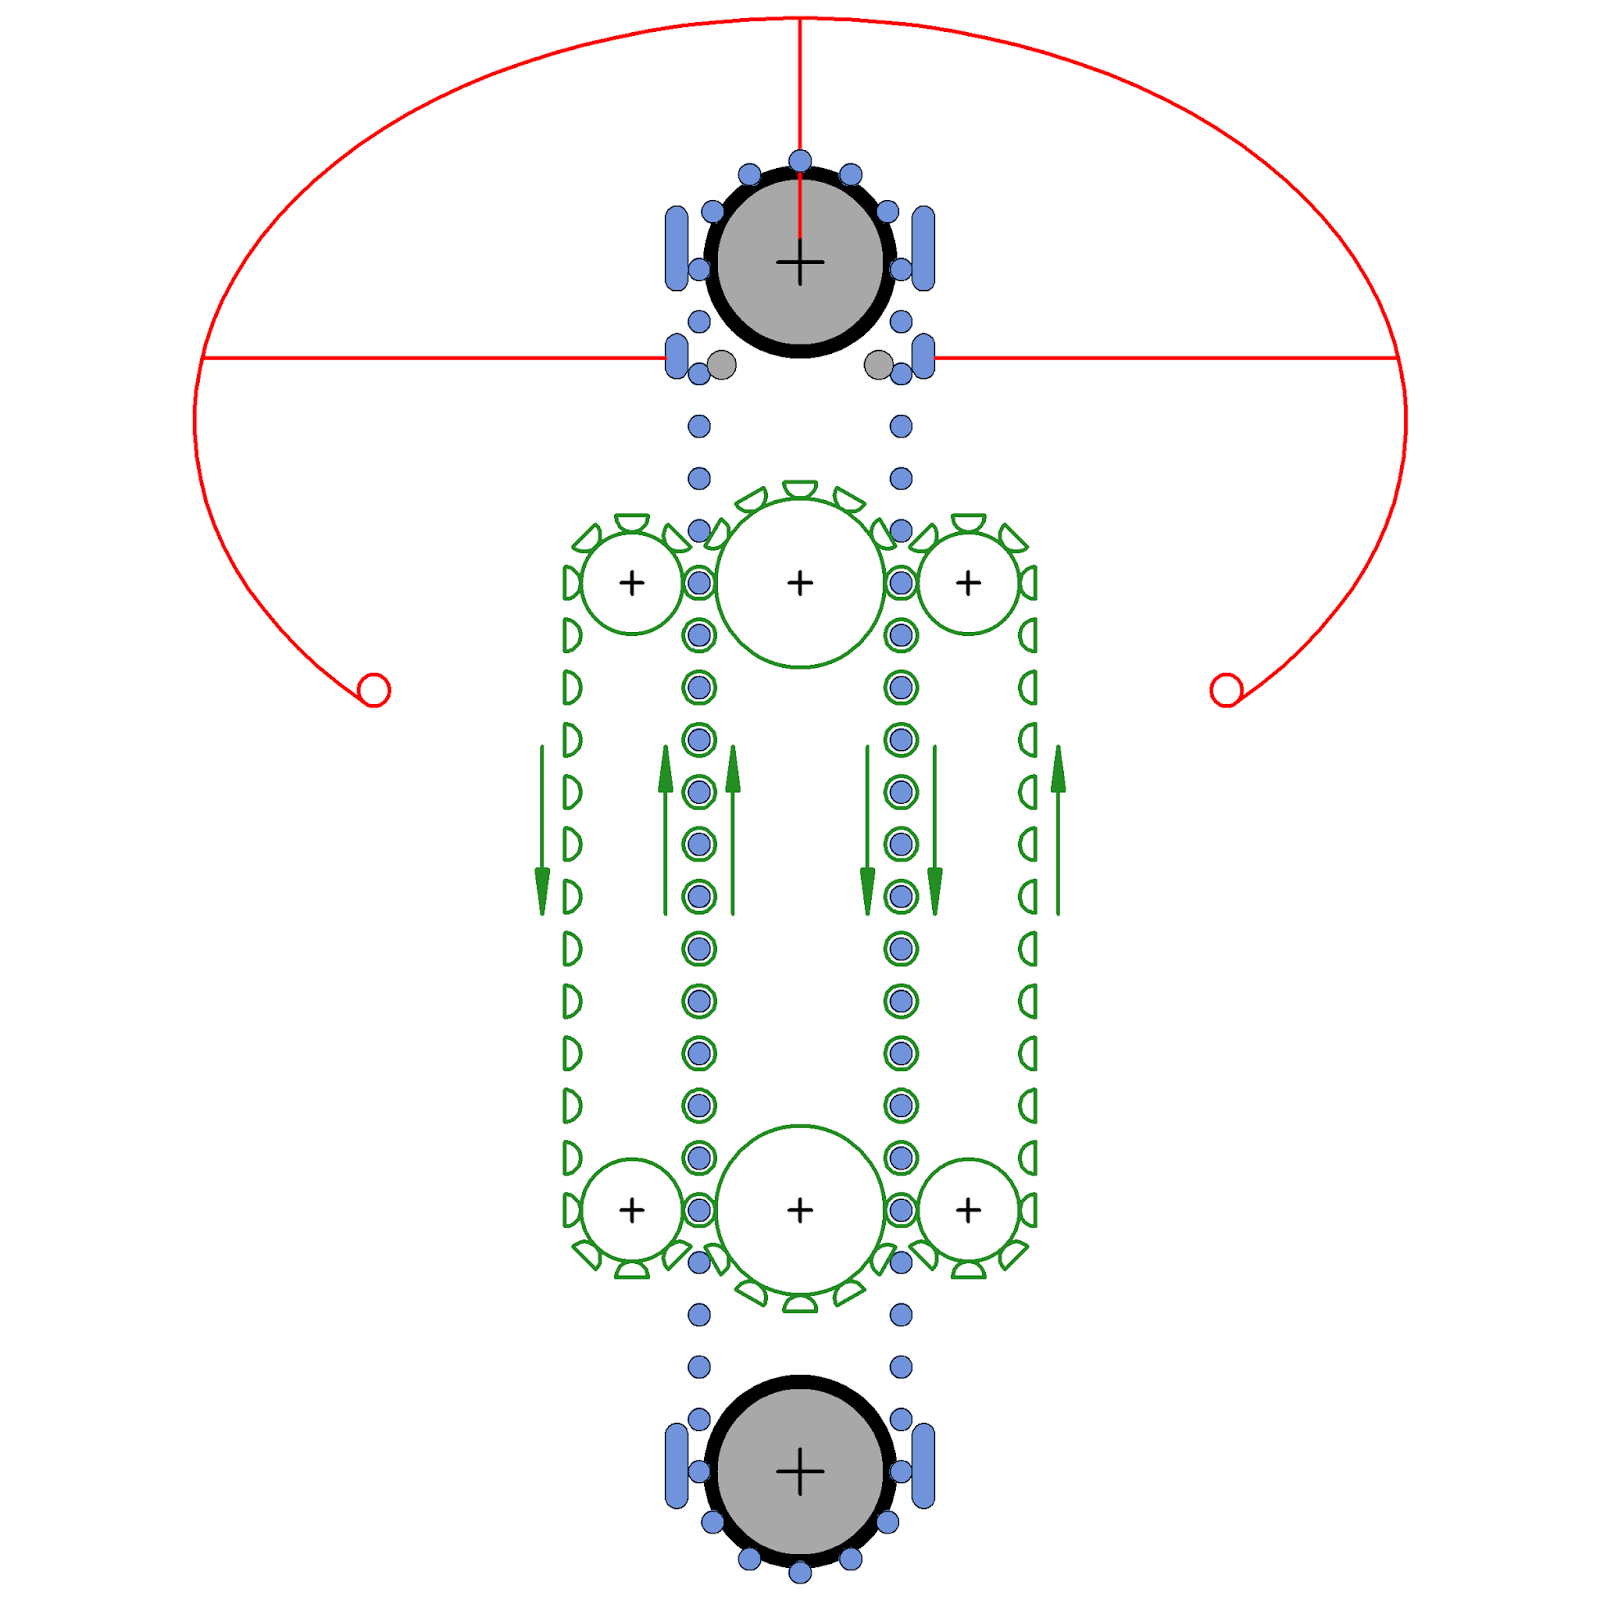 small resolution of cross sectional view of modified pelletron design with chains carrying hemispherical hollow metal shields each shield has insulating links to its